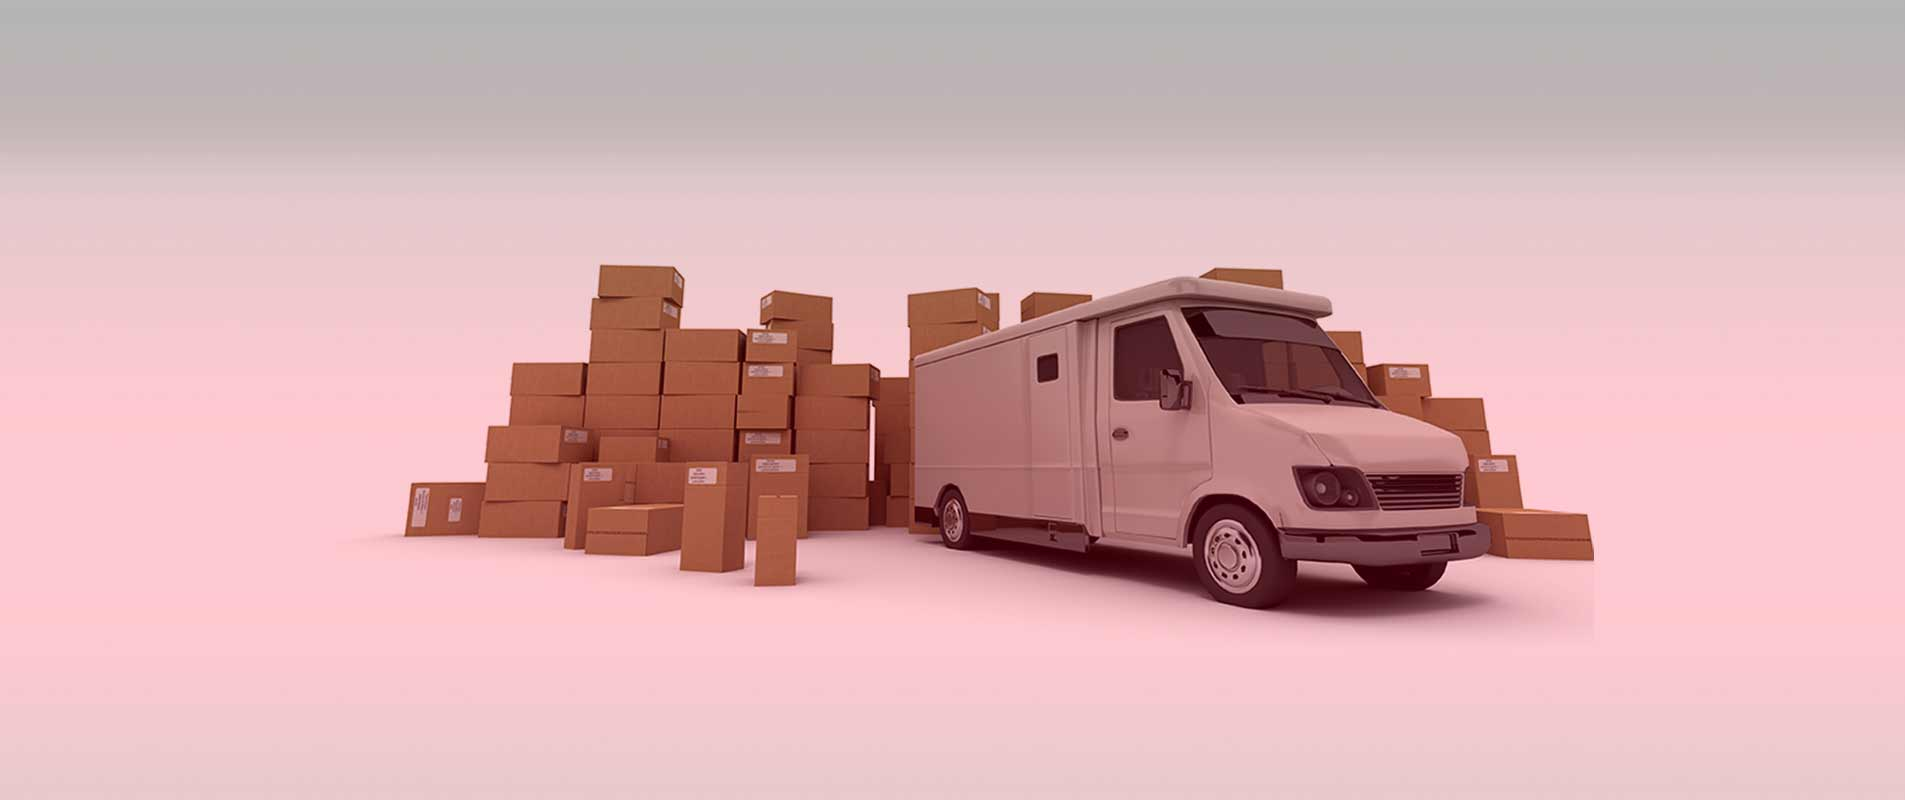 Home movers auckland affordable moving service auckland for Affordable furniture auckland